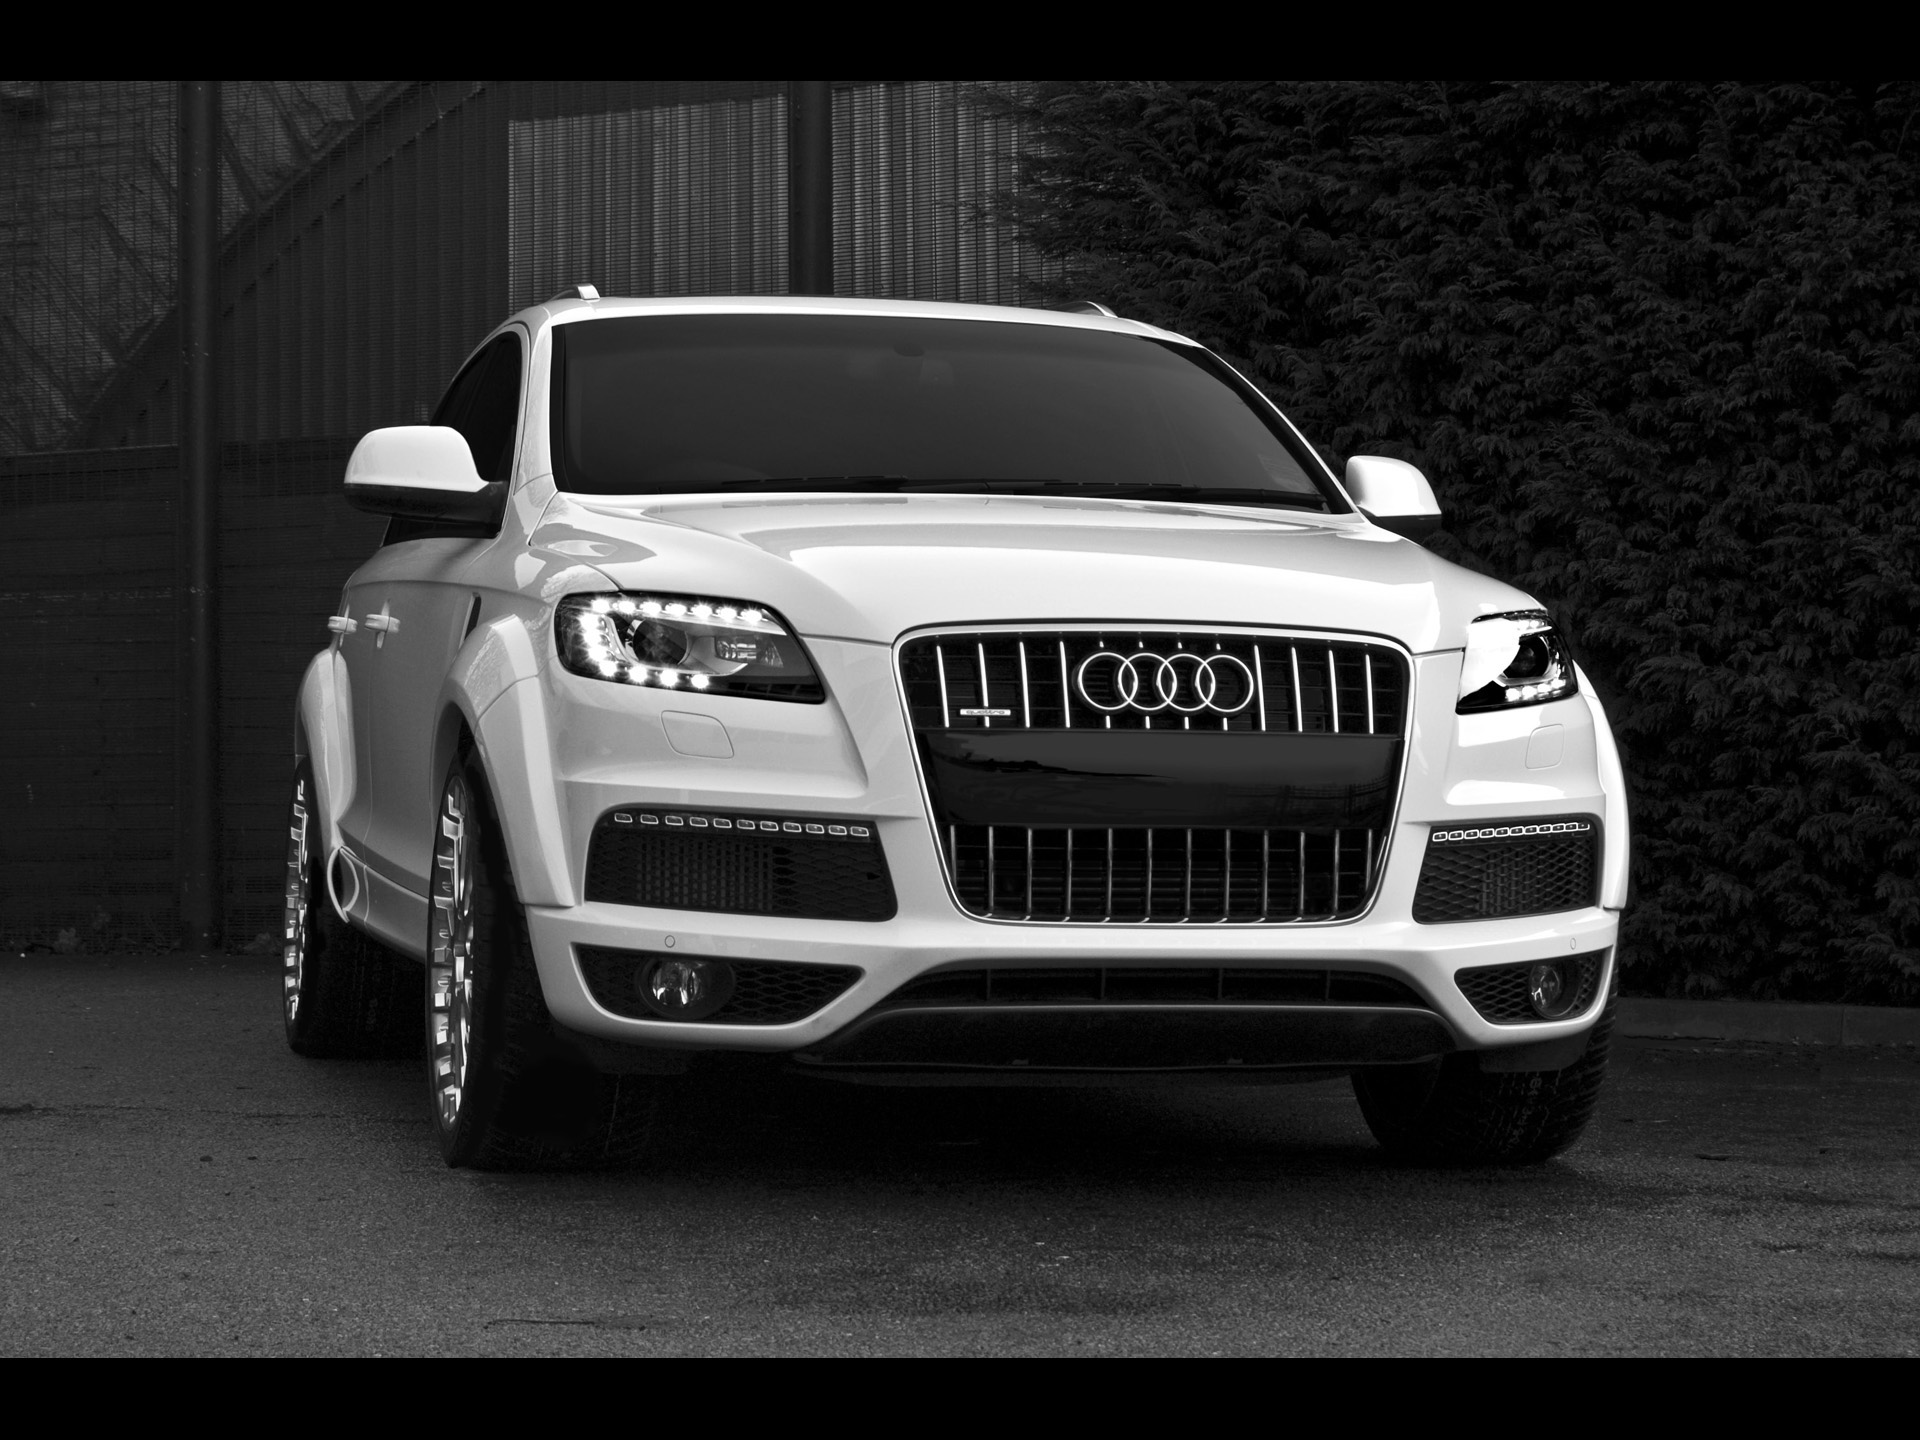 Audi Q7 Wallpaper Hd Dream Cars Audi Q7 1920x1440 Download Hd Wallpaper Wallpapertip